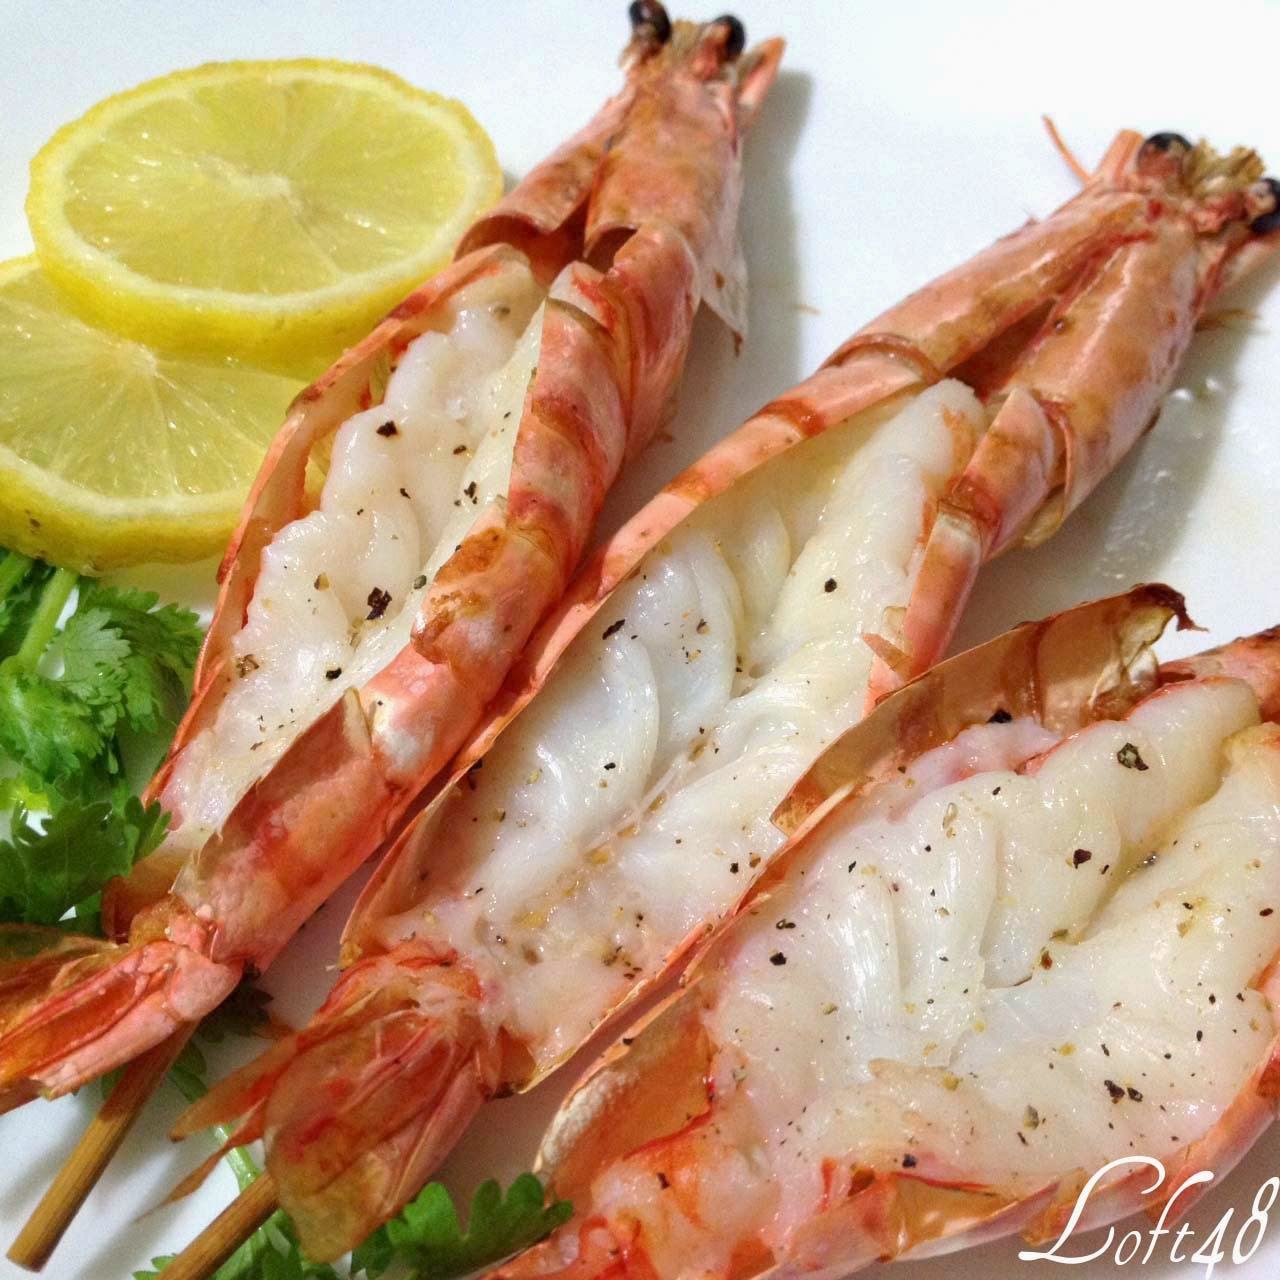 Loft48 grilled prawns served with garlic cream sauce air for Airfryer recipes fish